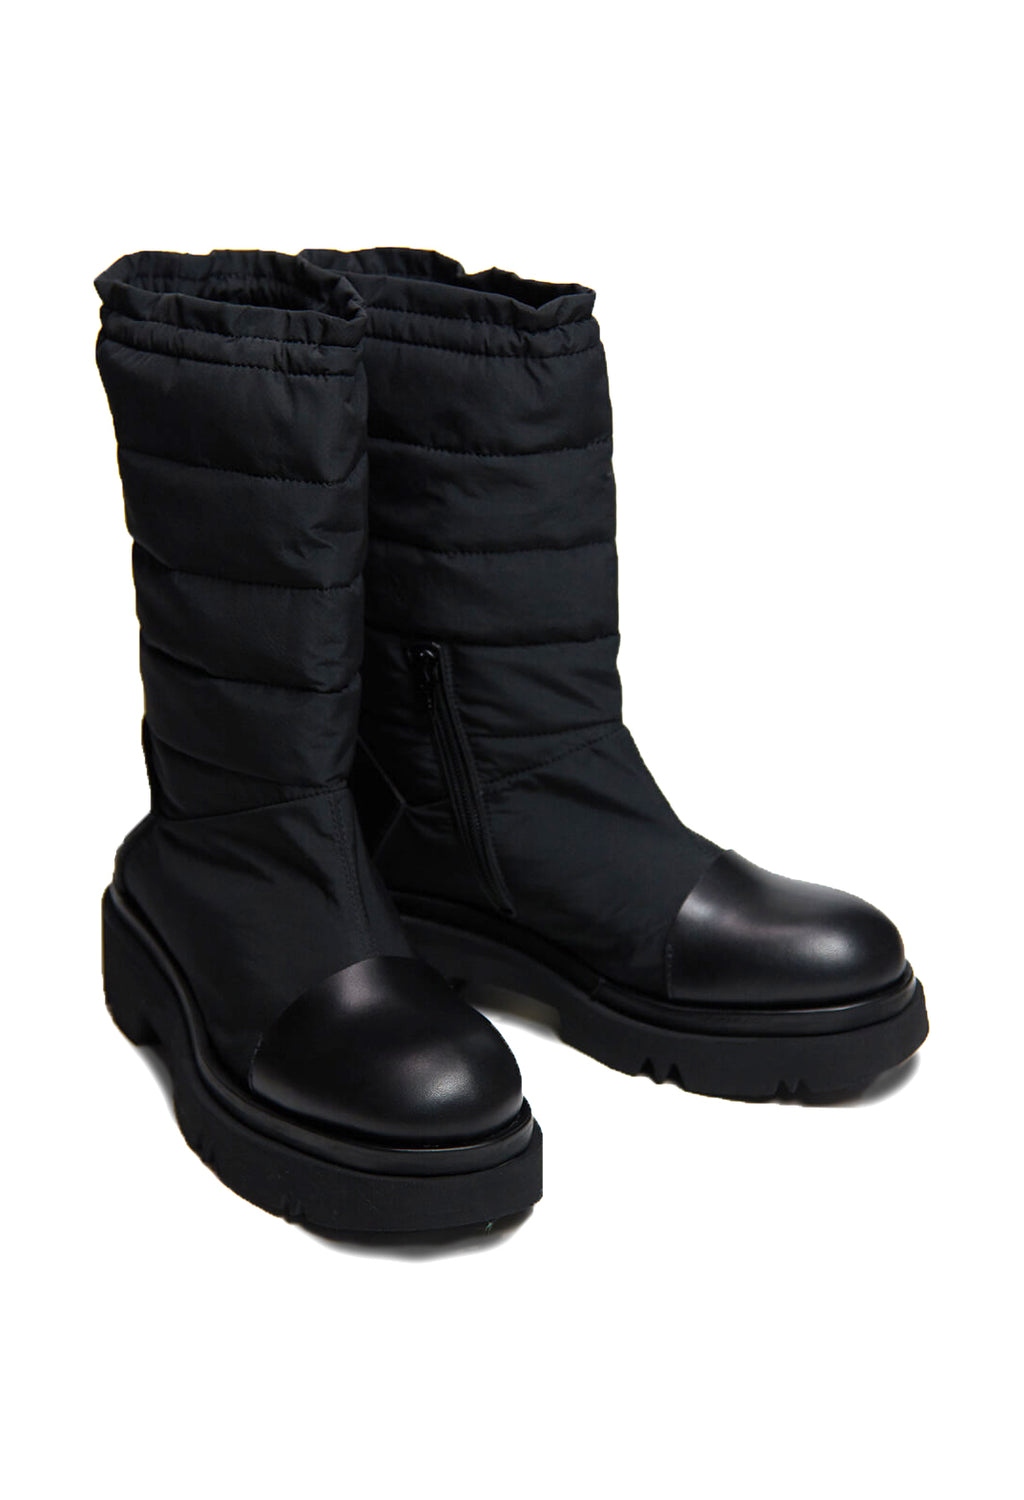 Padded Boots in Nero